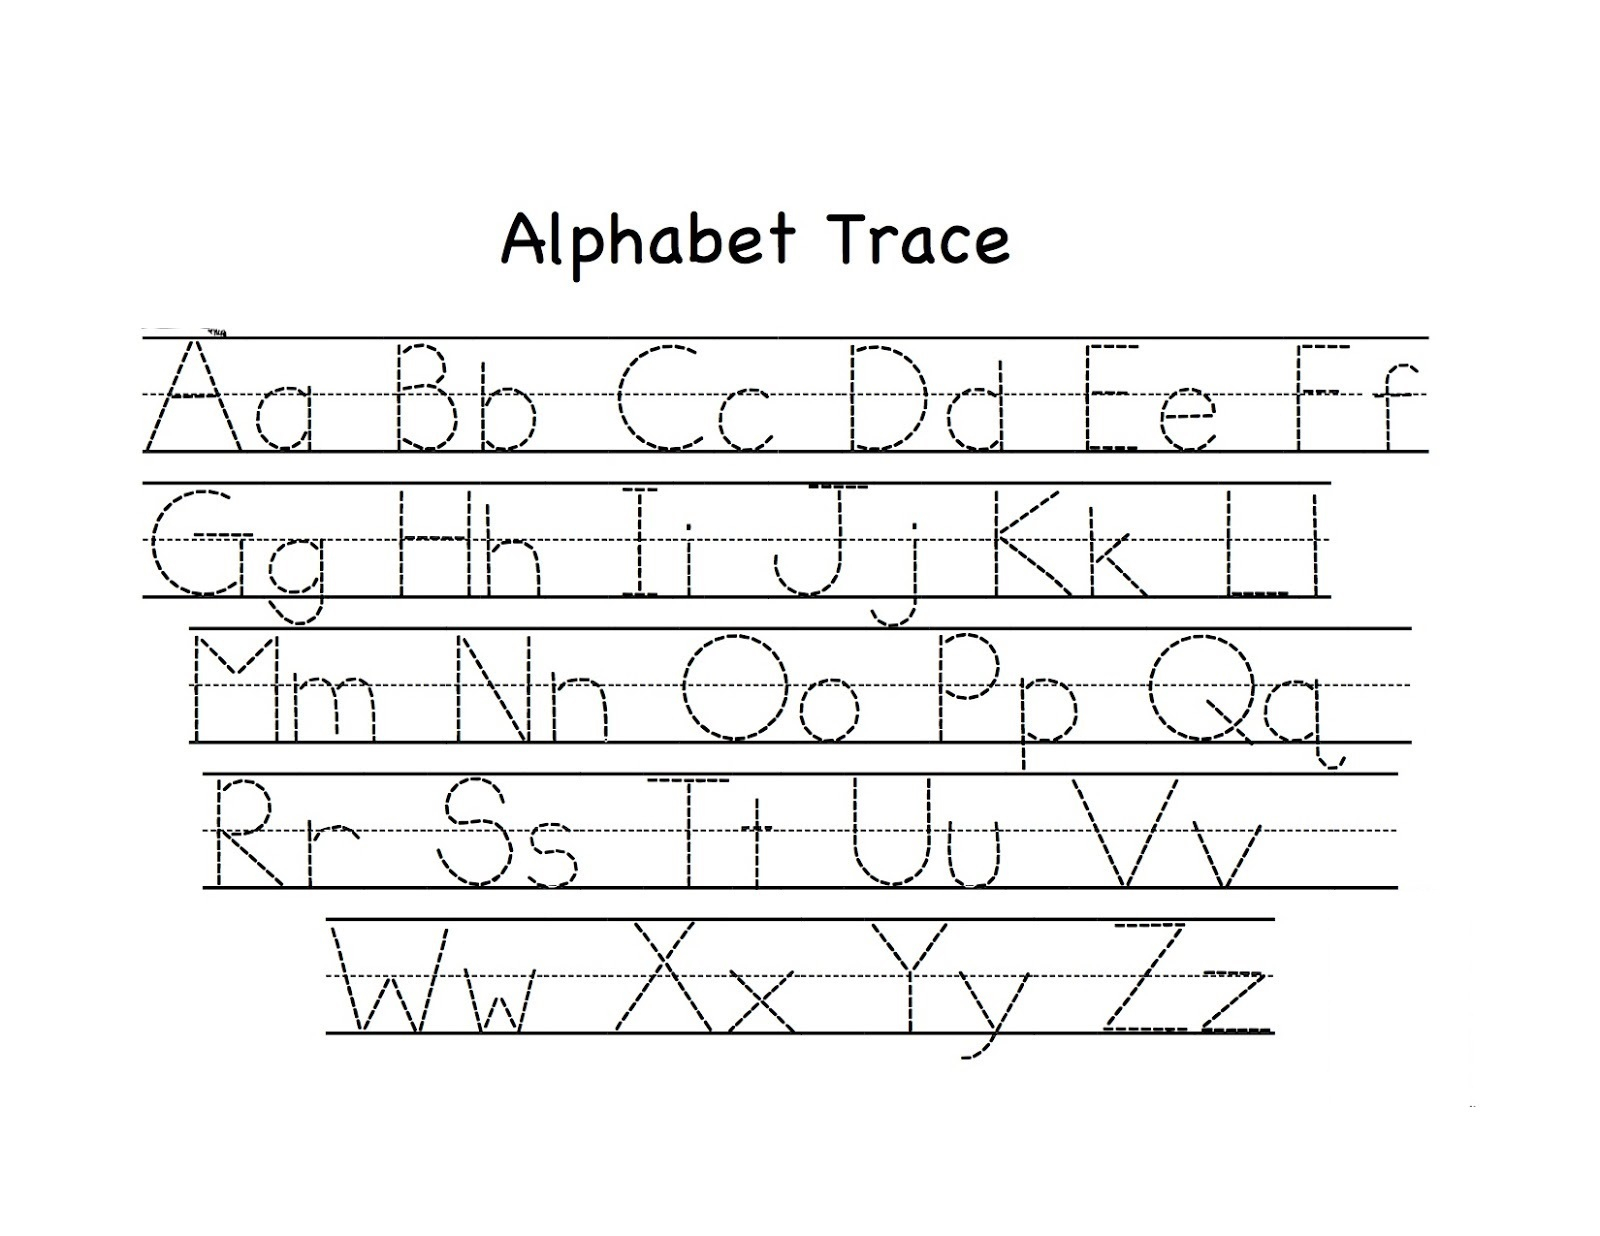 Preschool Tracing Worksheets - Best Coloring Pages For Kids inside Alphabet Tracing Activities For Preschoolers